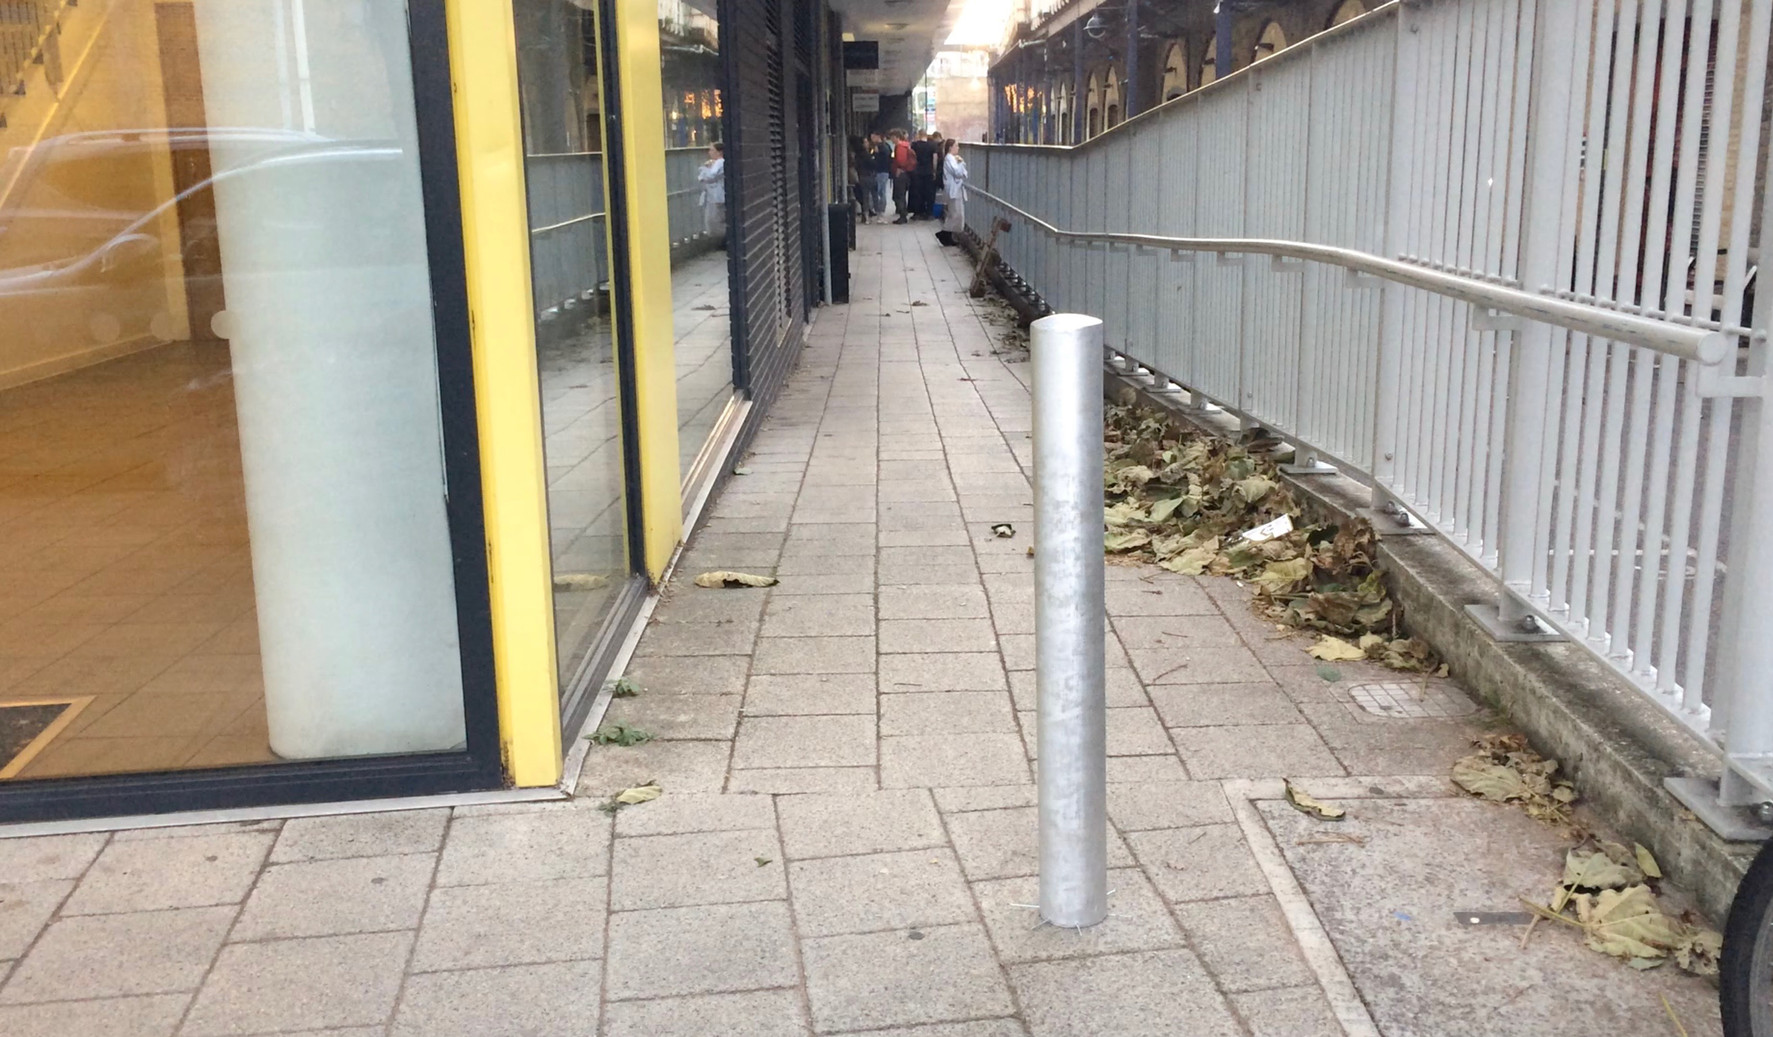 10 replica bollards were planted in selected pedestrian locations around Deptford (for DeptfordX Fringe). Documentation of public interactions with the bollards were recorded and broadcast live online.